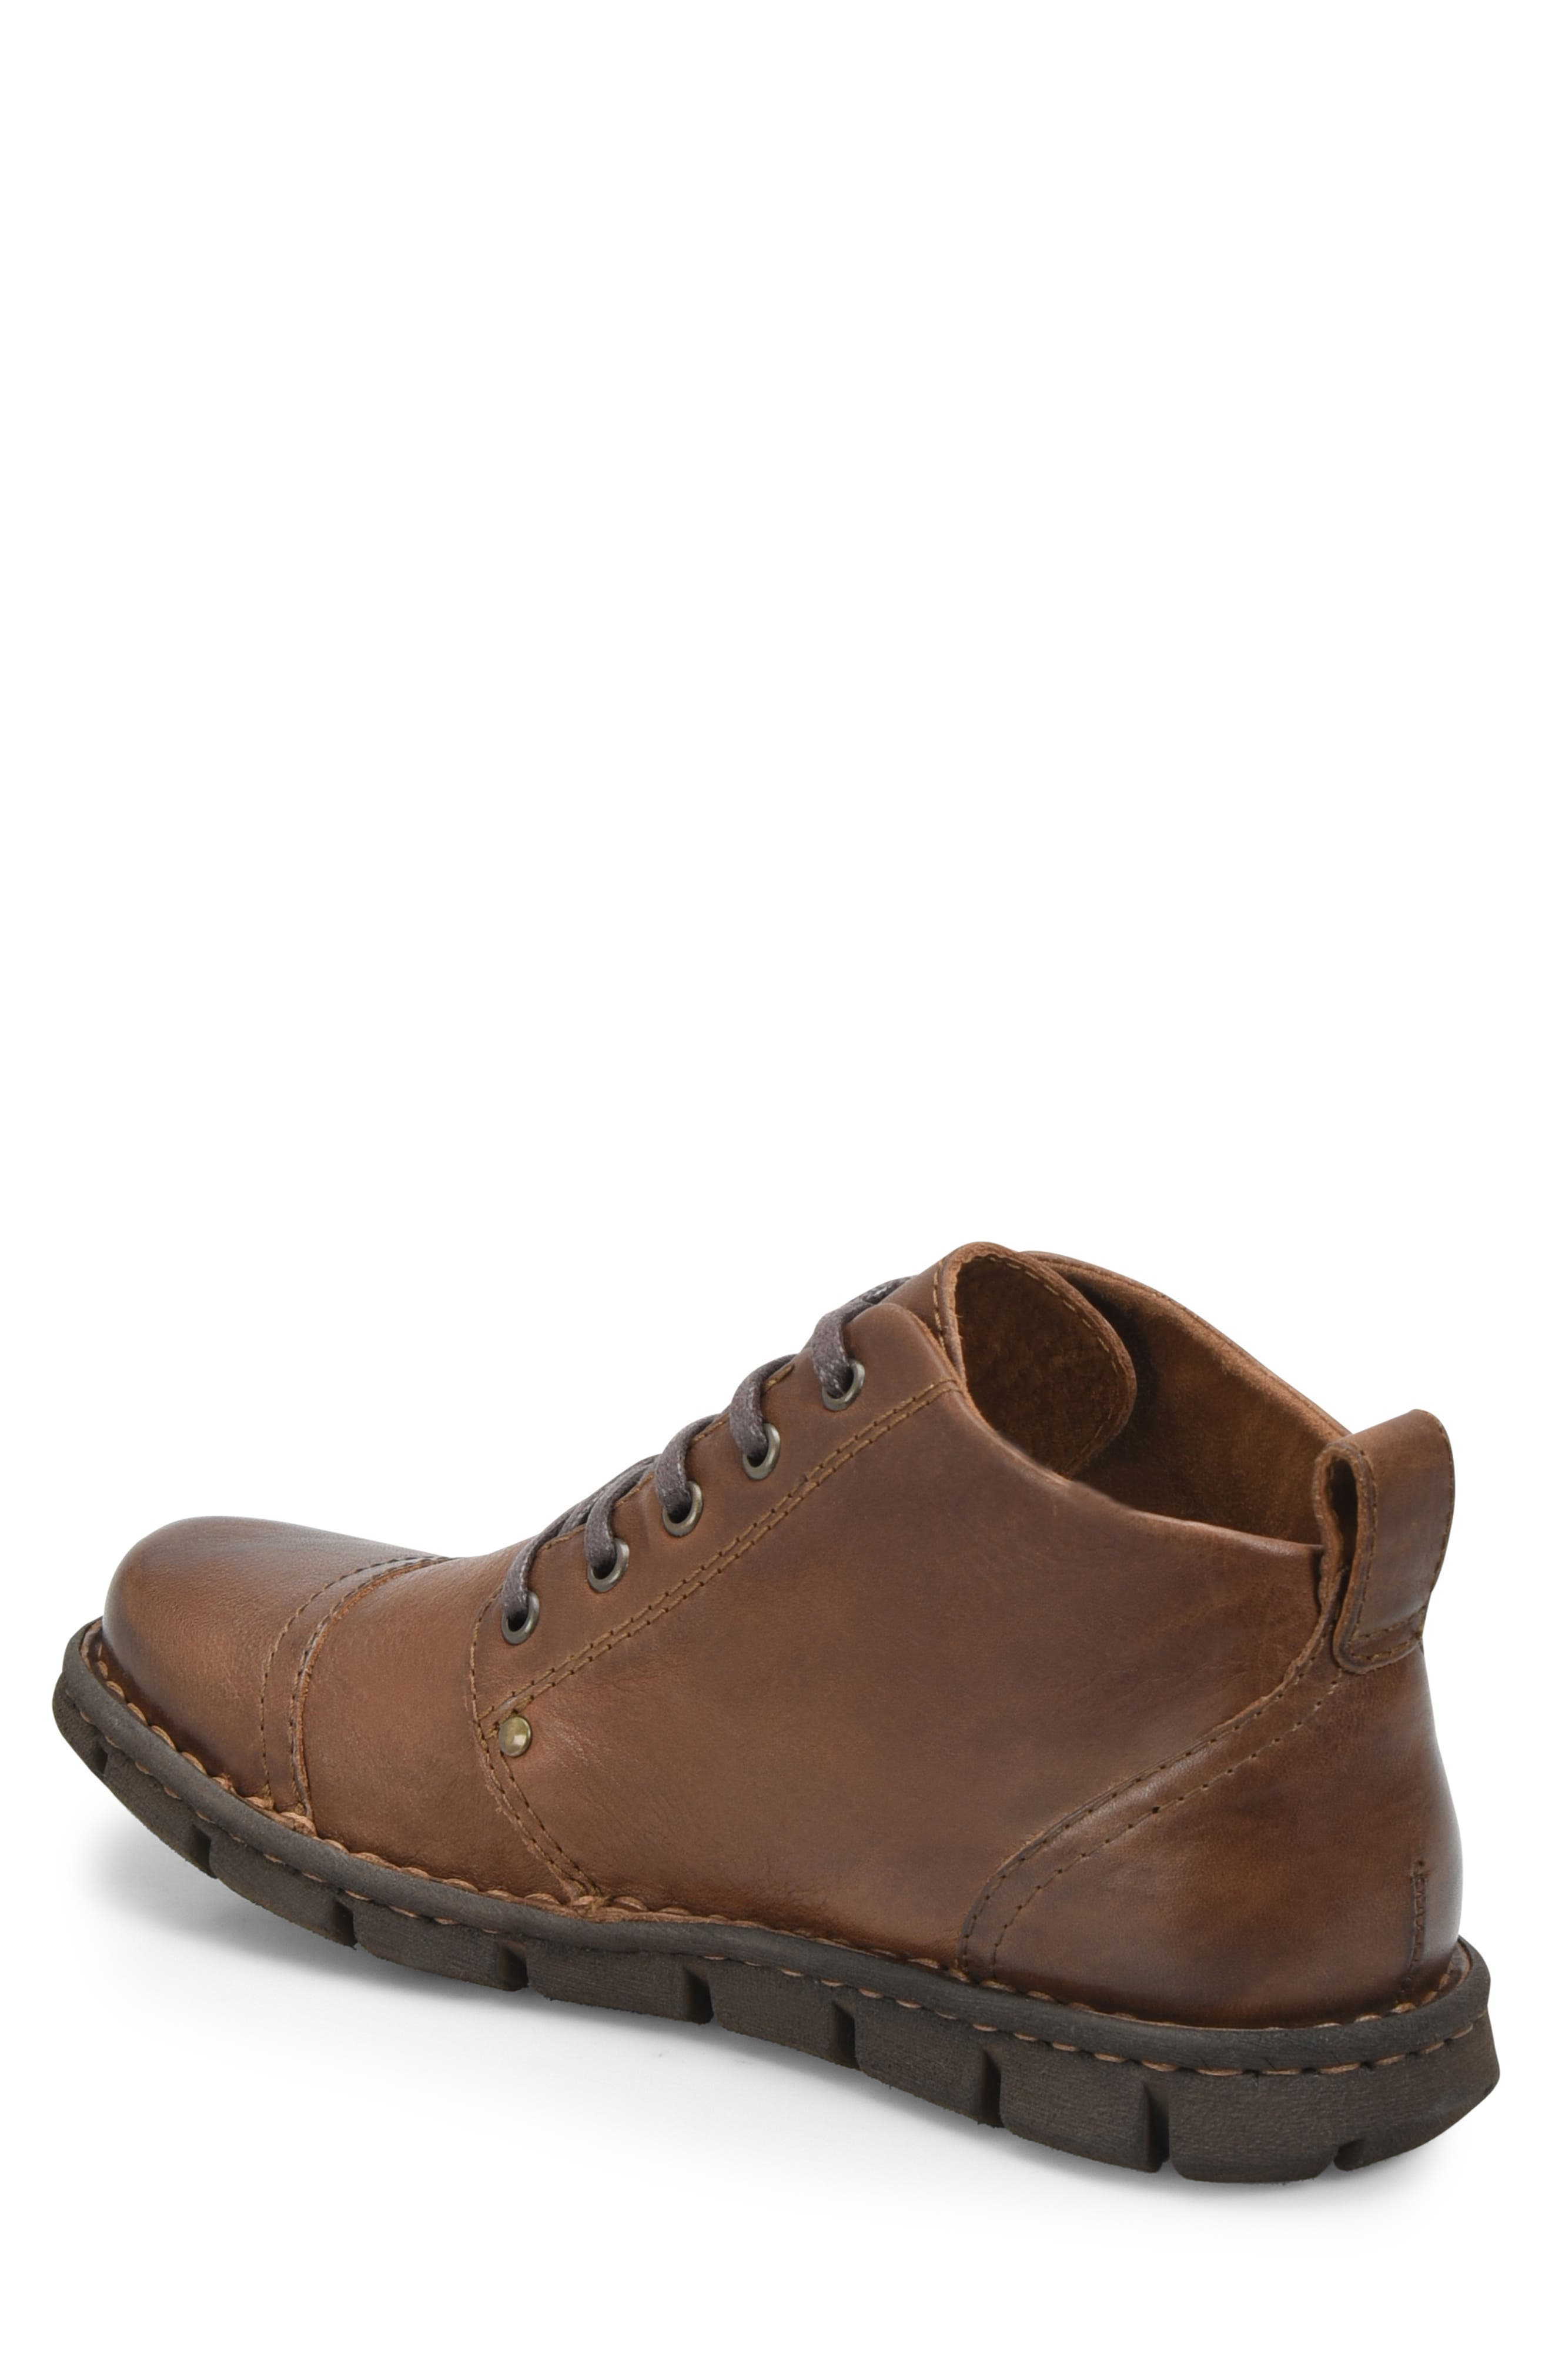 Boulder Cap Toe Boot,                             Alternate thumbnail 2, color,                             BROWN LEATHER